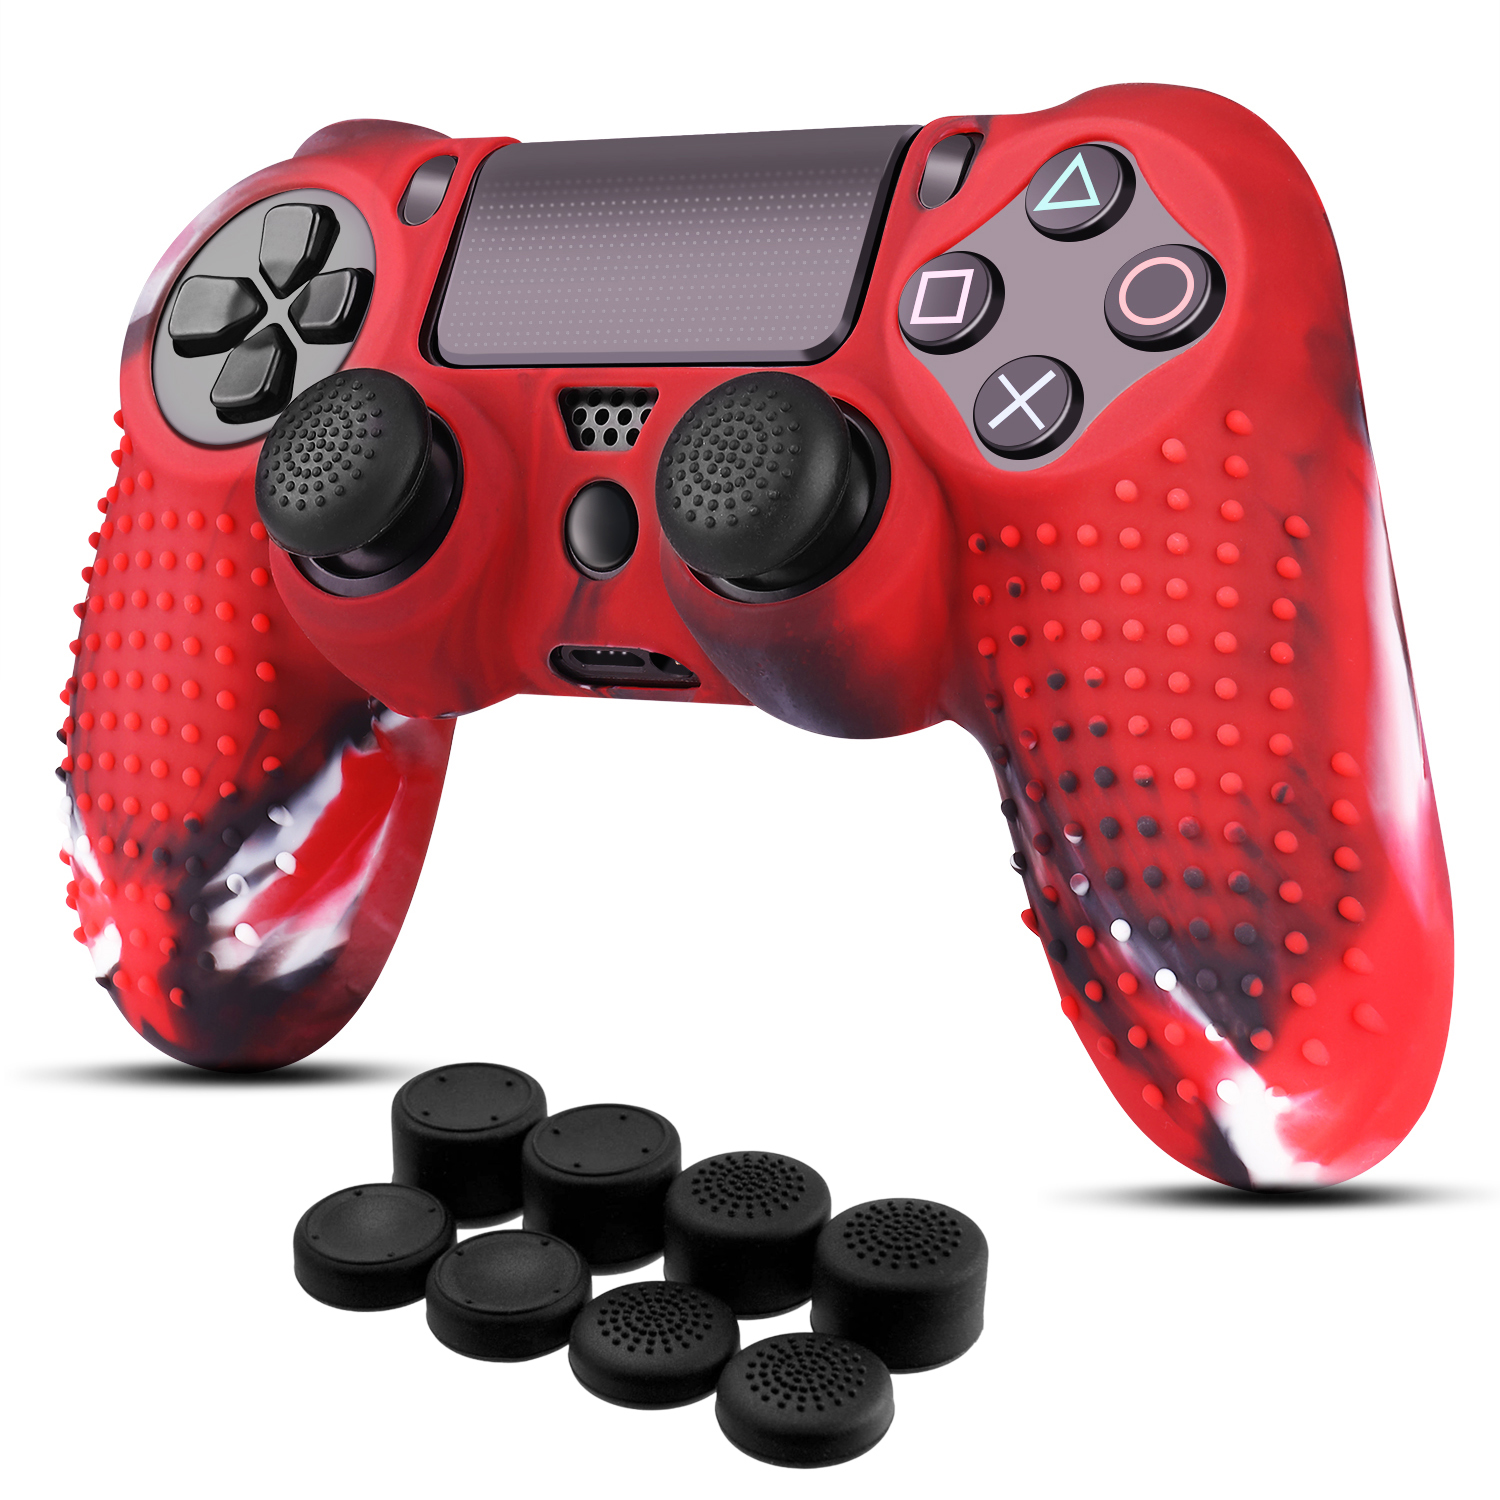 PS4 Controller Skin Thumb Grips BRHE 2 Pack DualShock 4 Silicone Cover Protector Skins Case Accessories Kits for Sony Playstation 4 //Slim//Pro Gamepad with 8 x Pro Thumb Grip Caps(Red /& Blue)